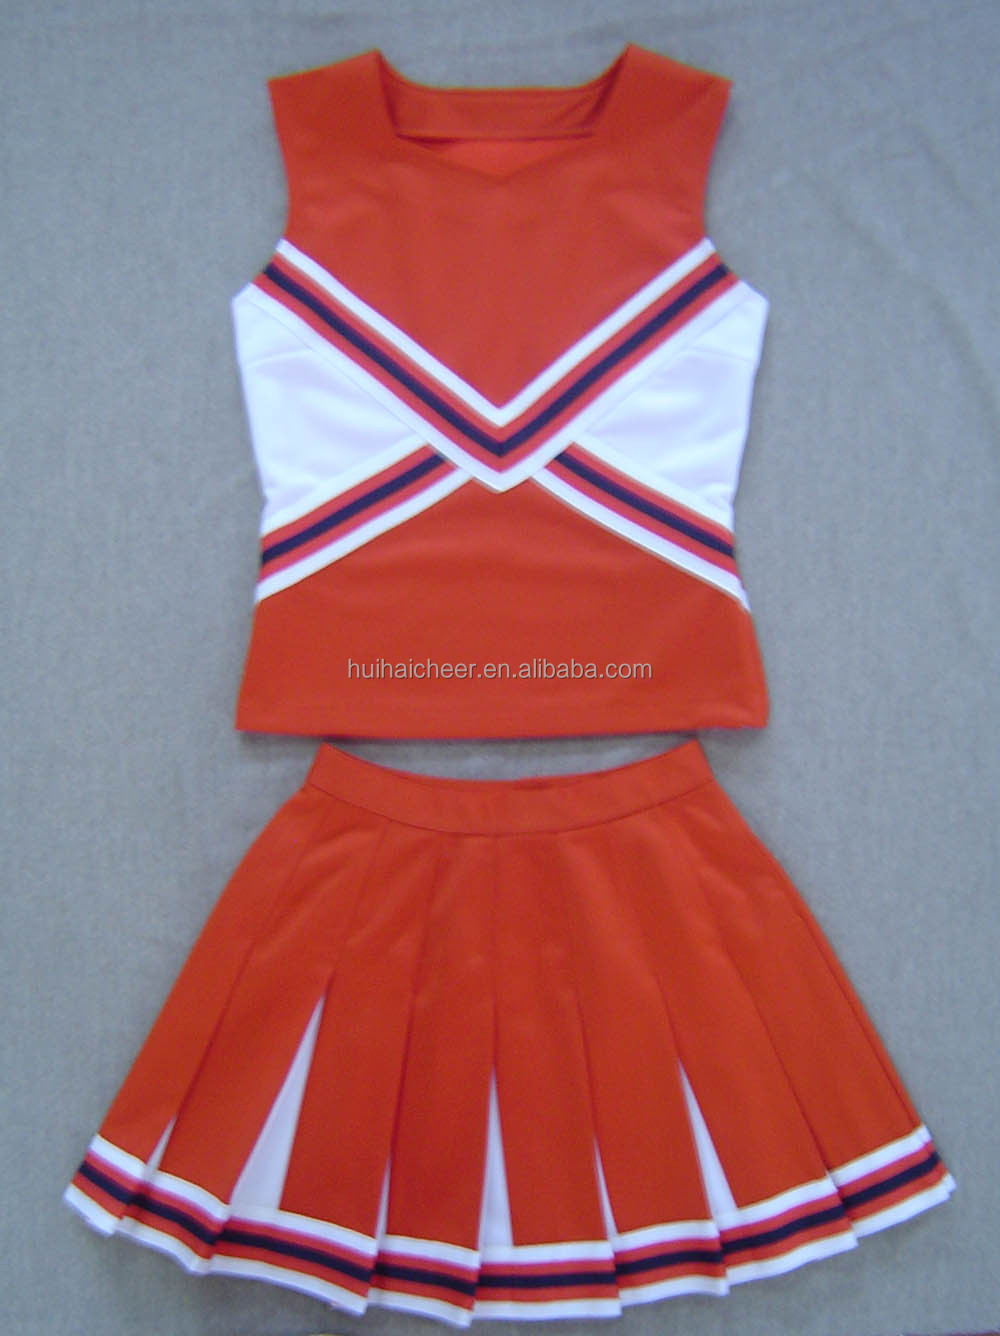 Cheerleading Uniforms Red White Colors